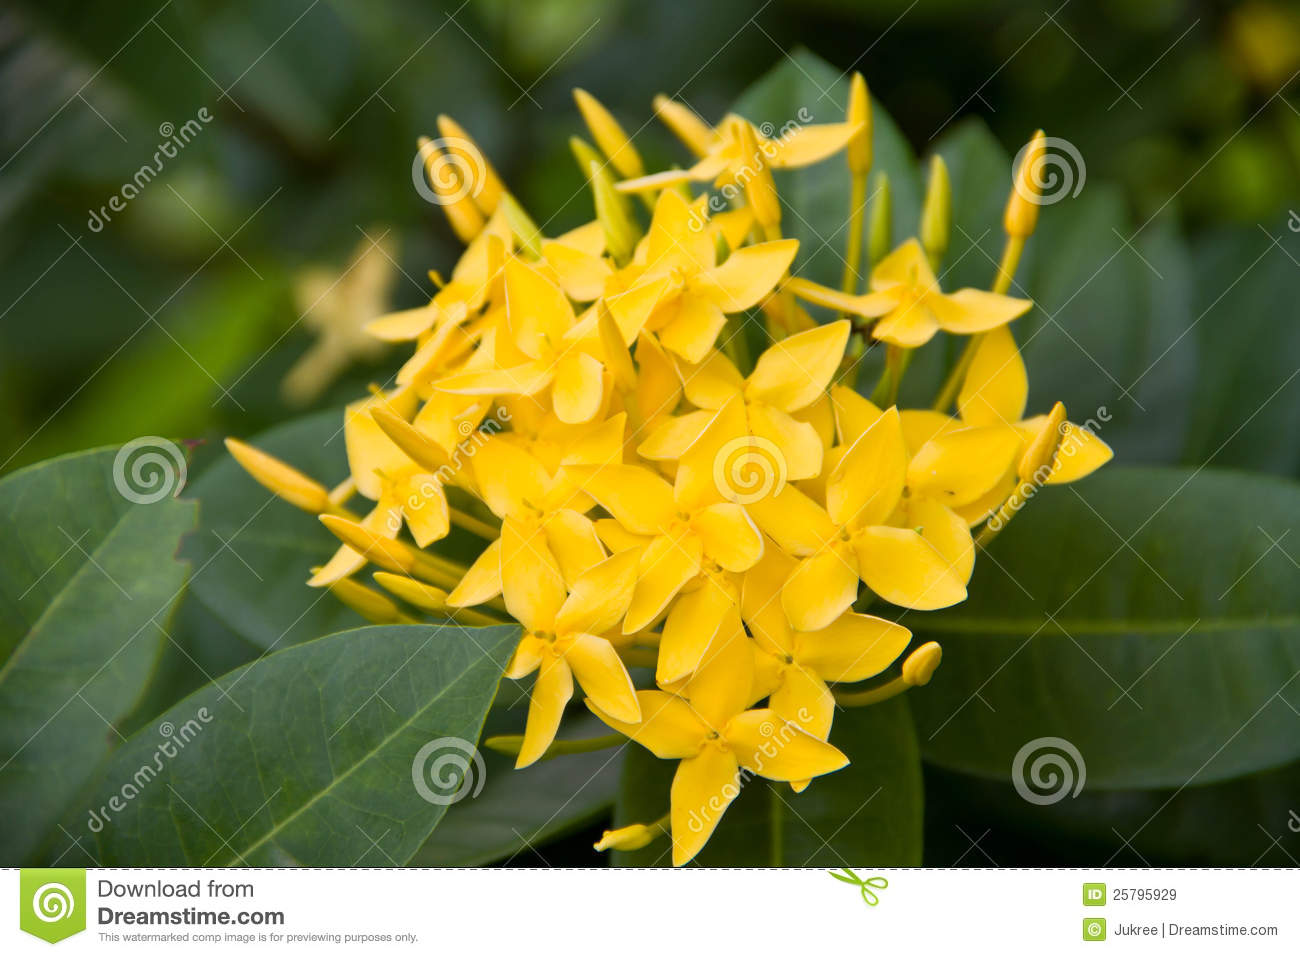 West indian jasmine flower stock image image of beautiful 25795929 west indian jasmine flower izmirmasajfo